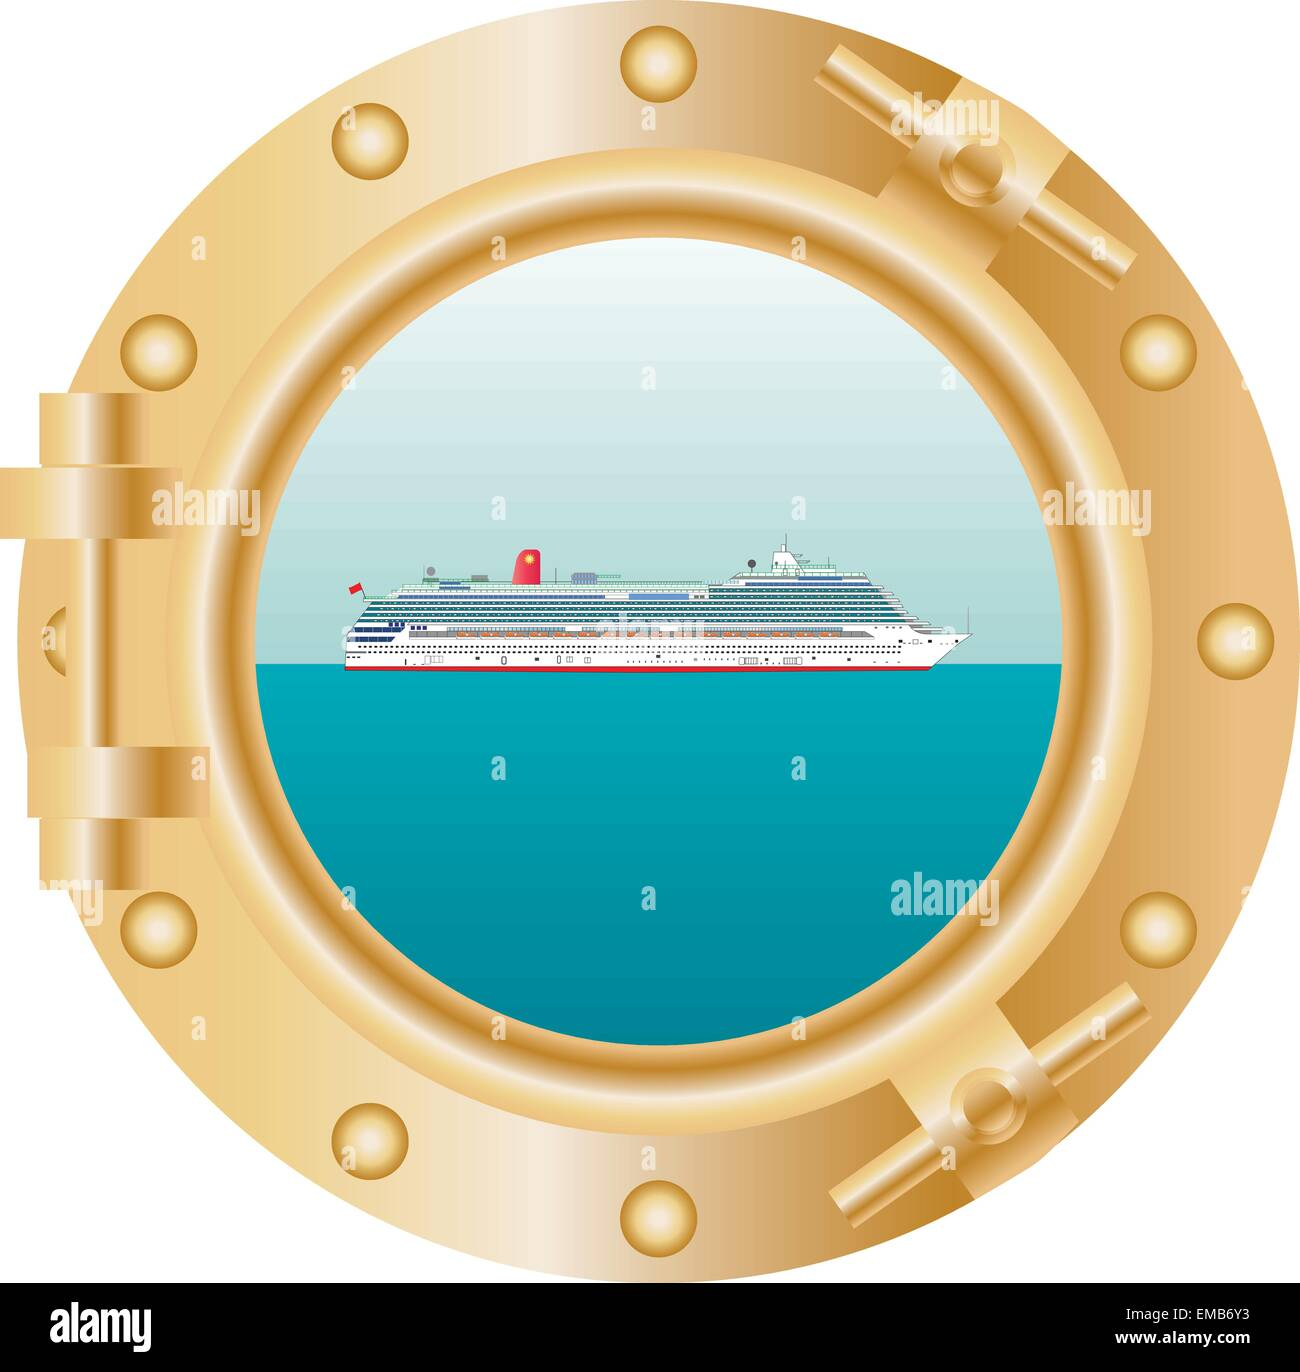 A vector illustration of the View through a ships' porthole showing a Cruise Liner sailing past on a Tropical - Stock Vector